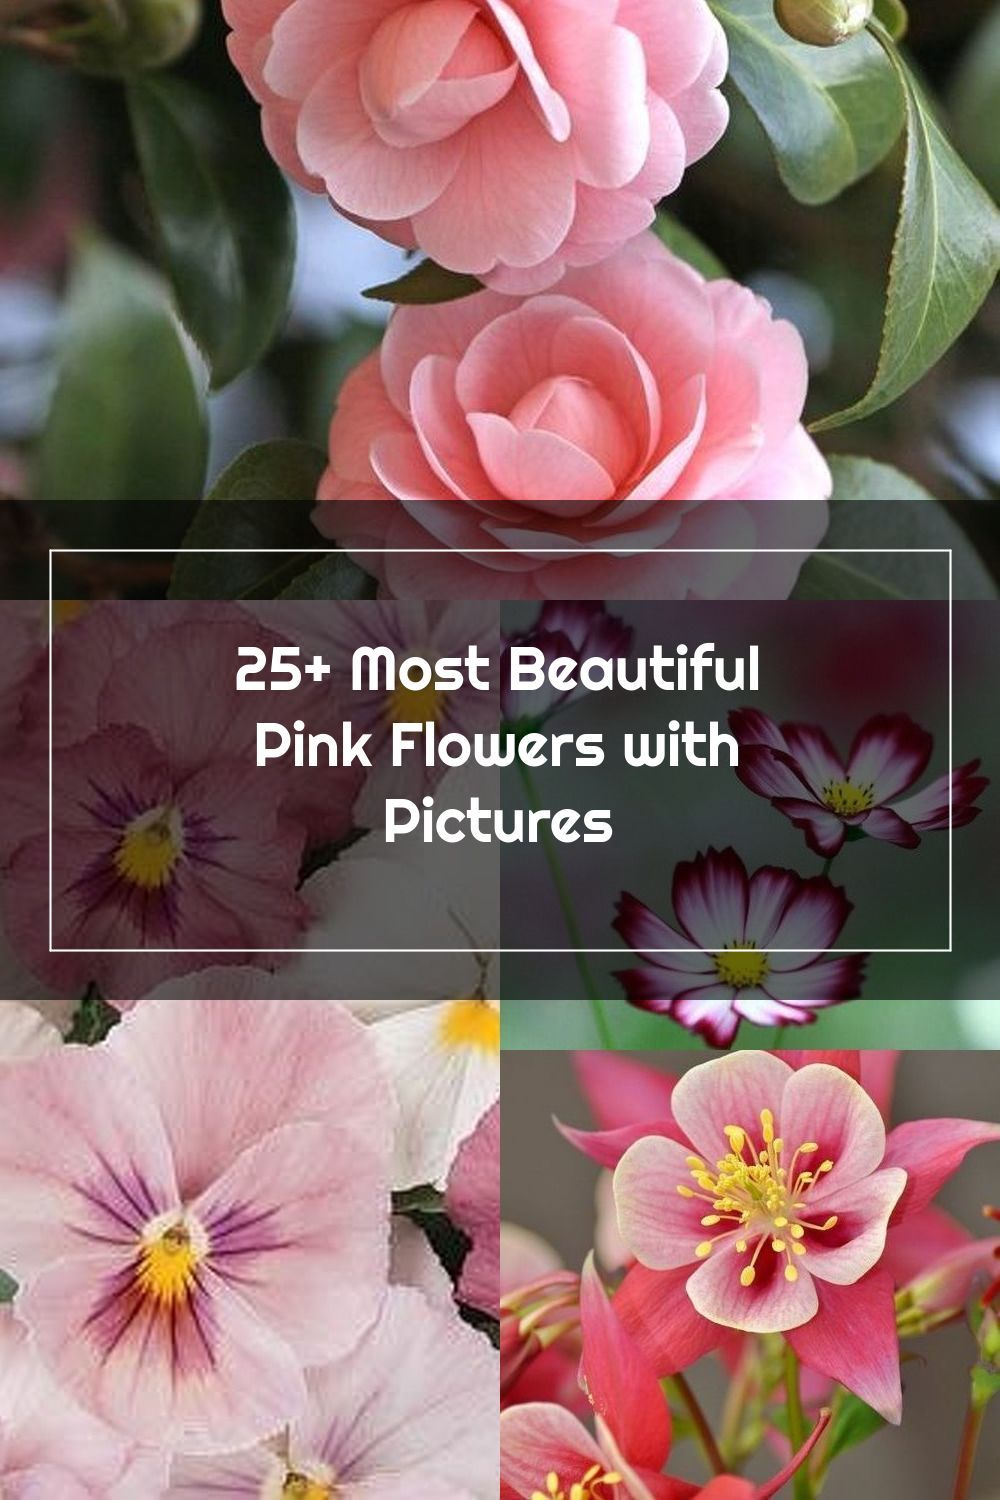 Most Beautiful Pink Flowers In The World Camellia Flower In 2020 Beautiful Pink Flowers Pink Flowers Camellia Flower